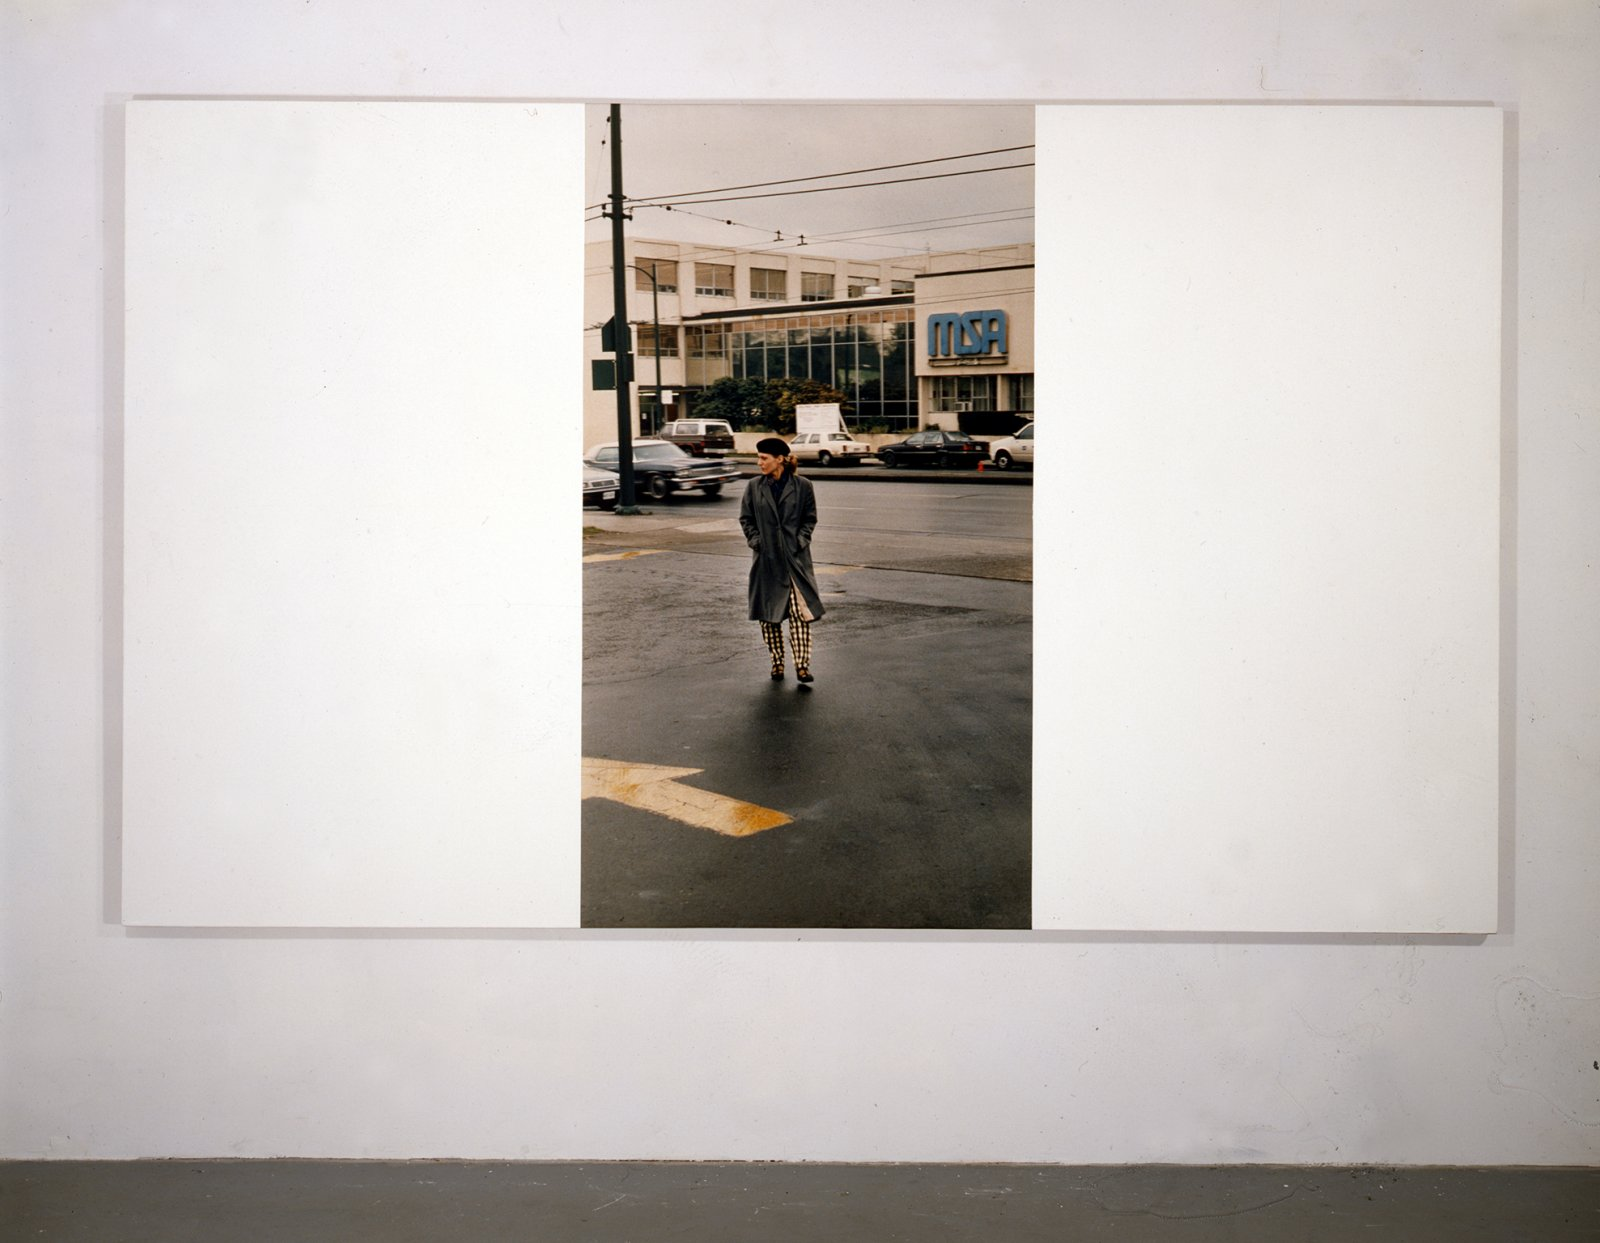 Ian Wallace, My Heroes in the Street V (Wendy), 1986–1989, photolaminate and acrylic on canvas, 72 x 120 in. (183 x 305 cm)